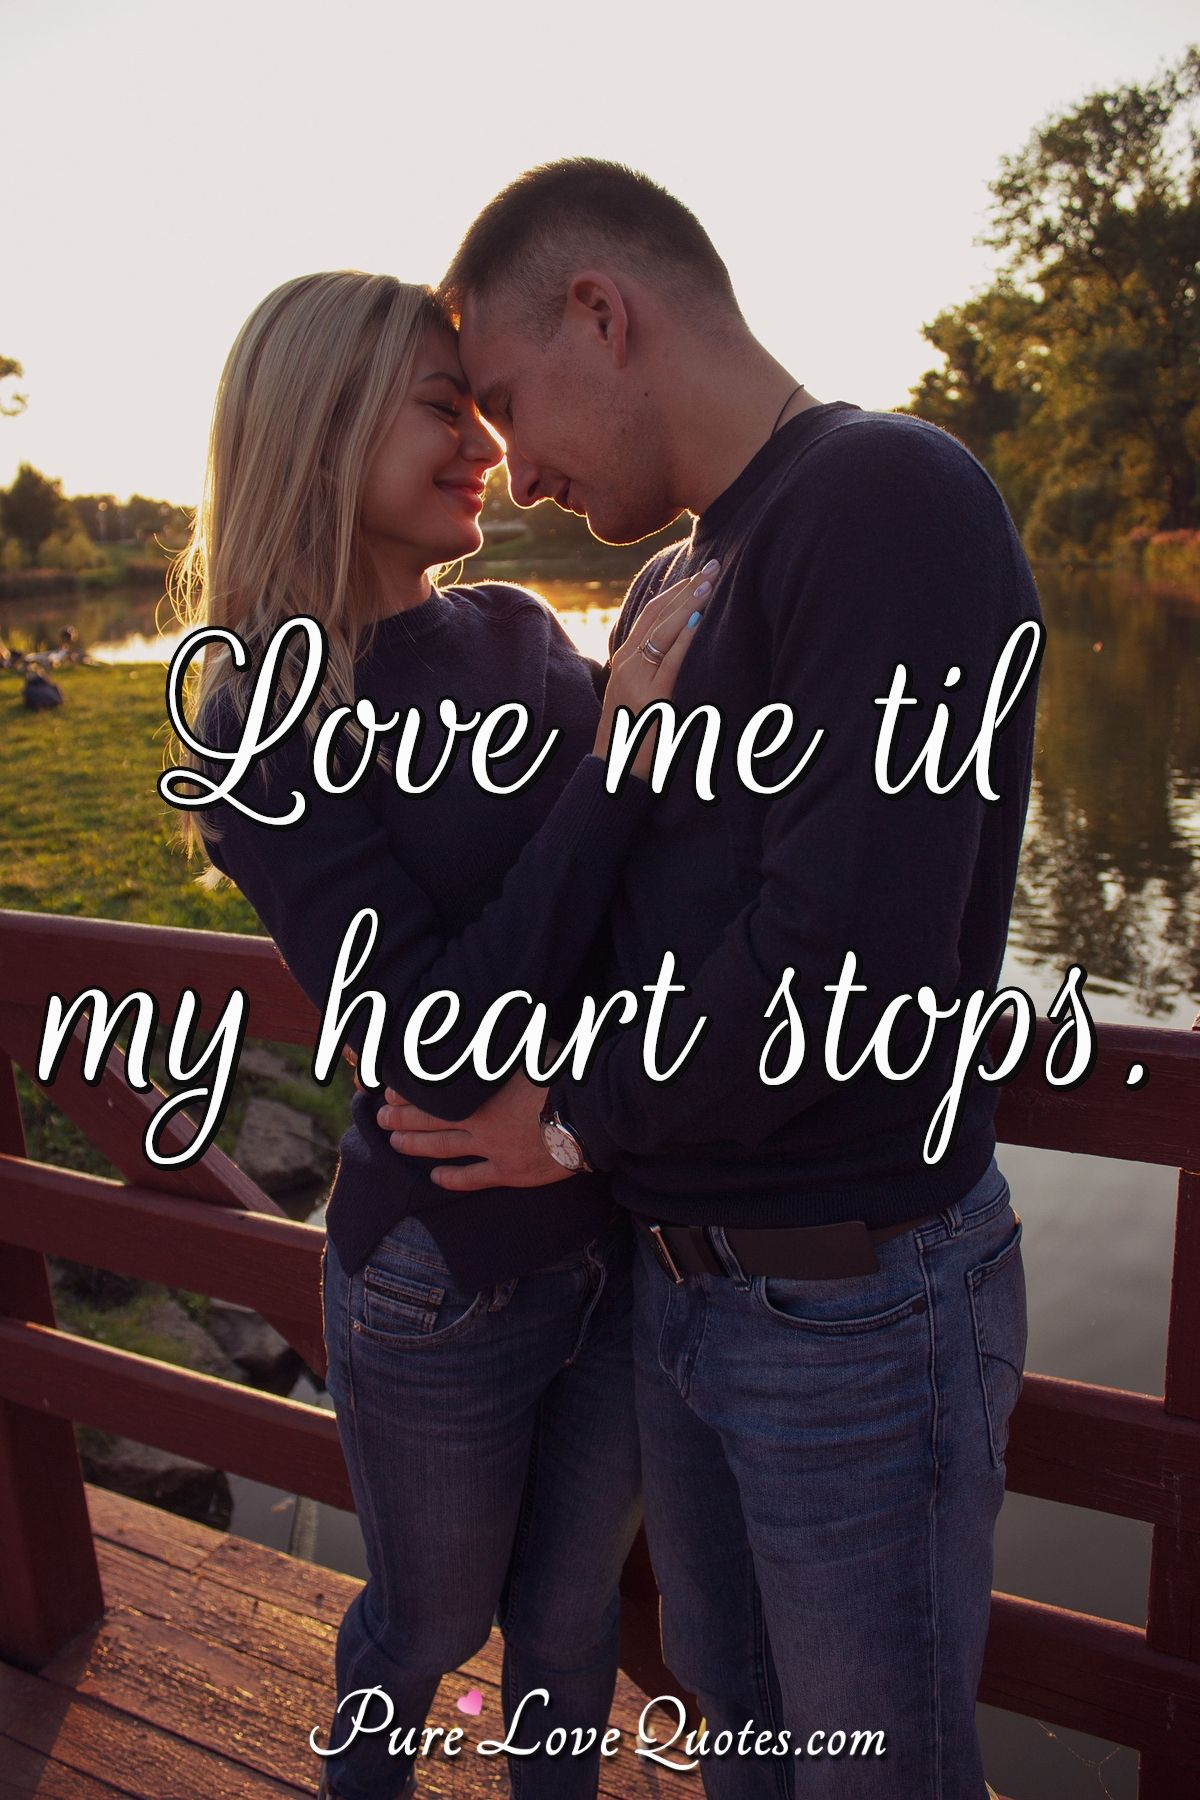 Love me 'til my heart stops. - Anonymous